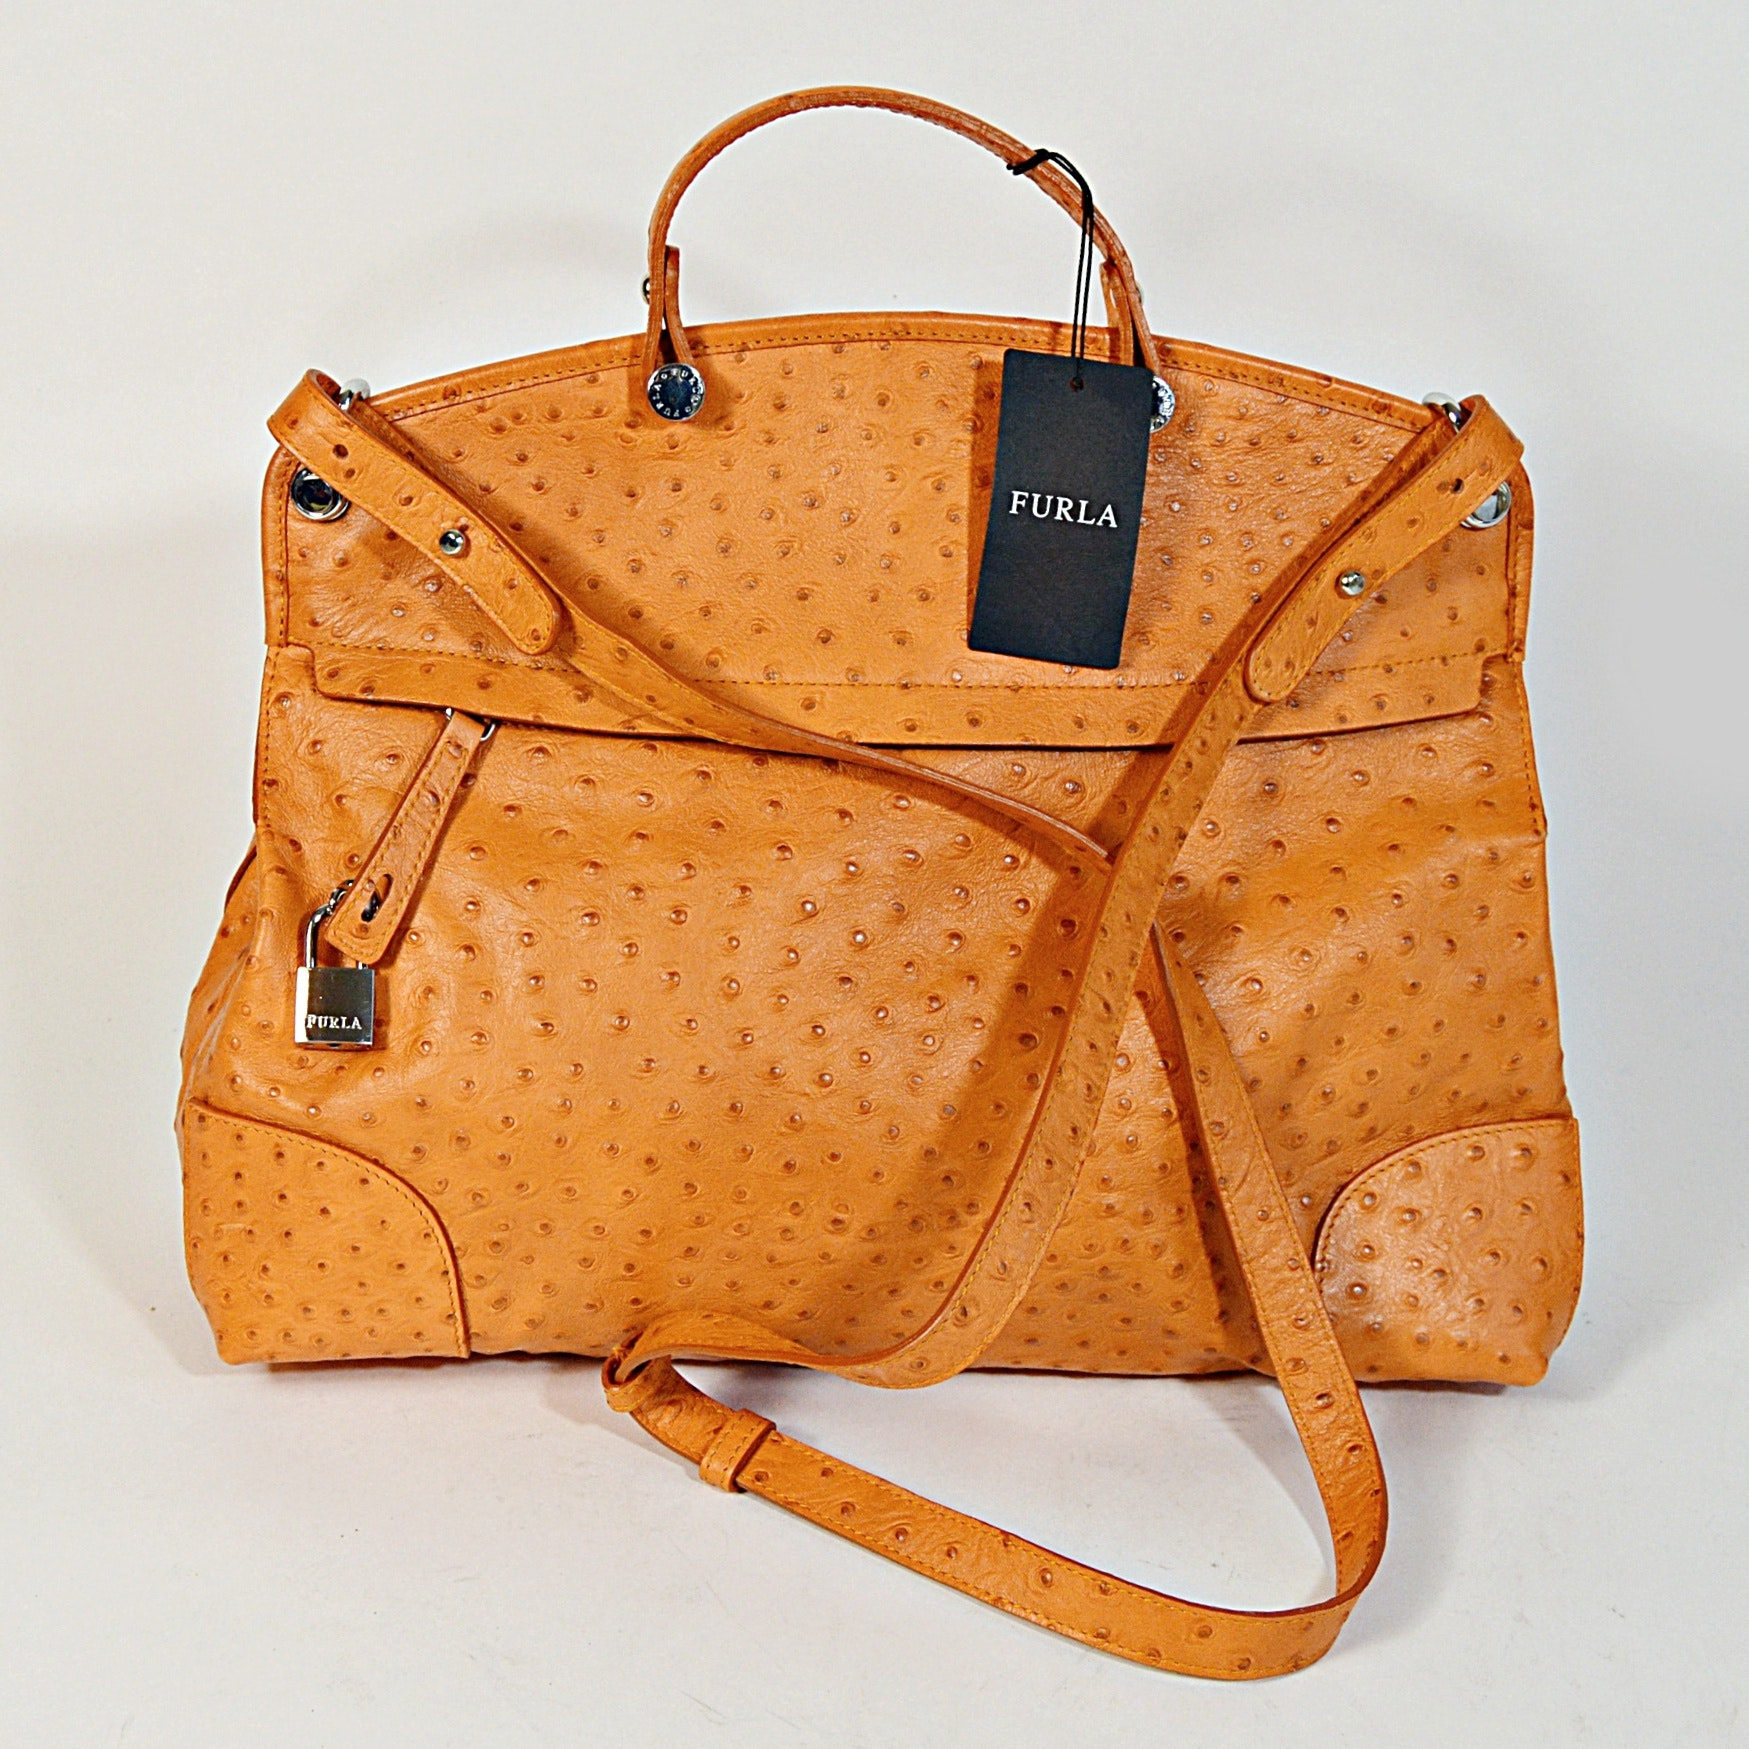 Furla Piper Ostrich-Embossed Leather Satchel Bag